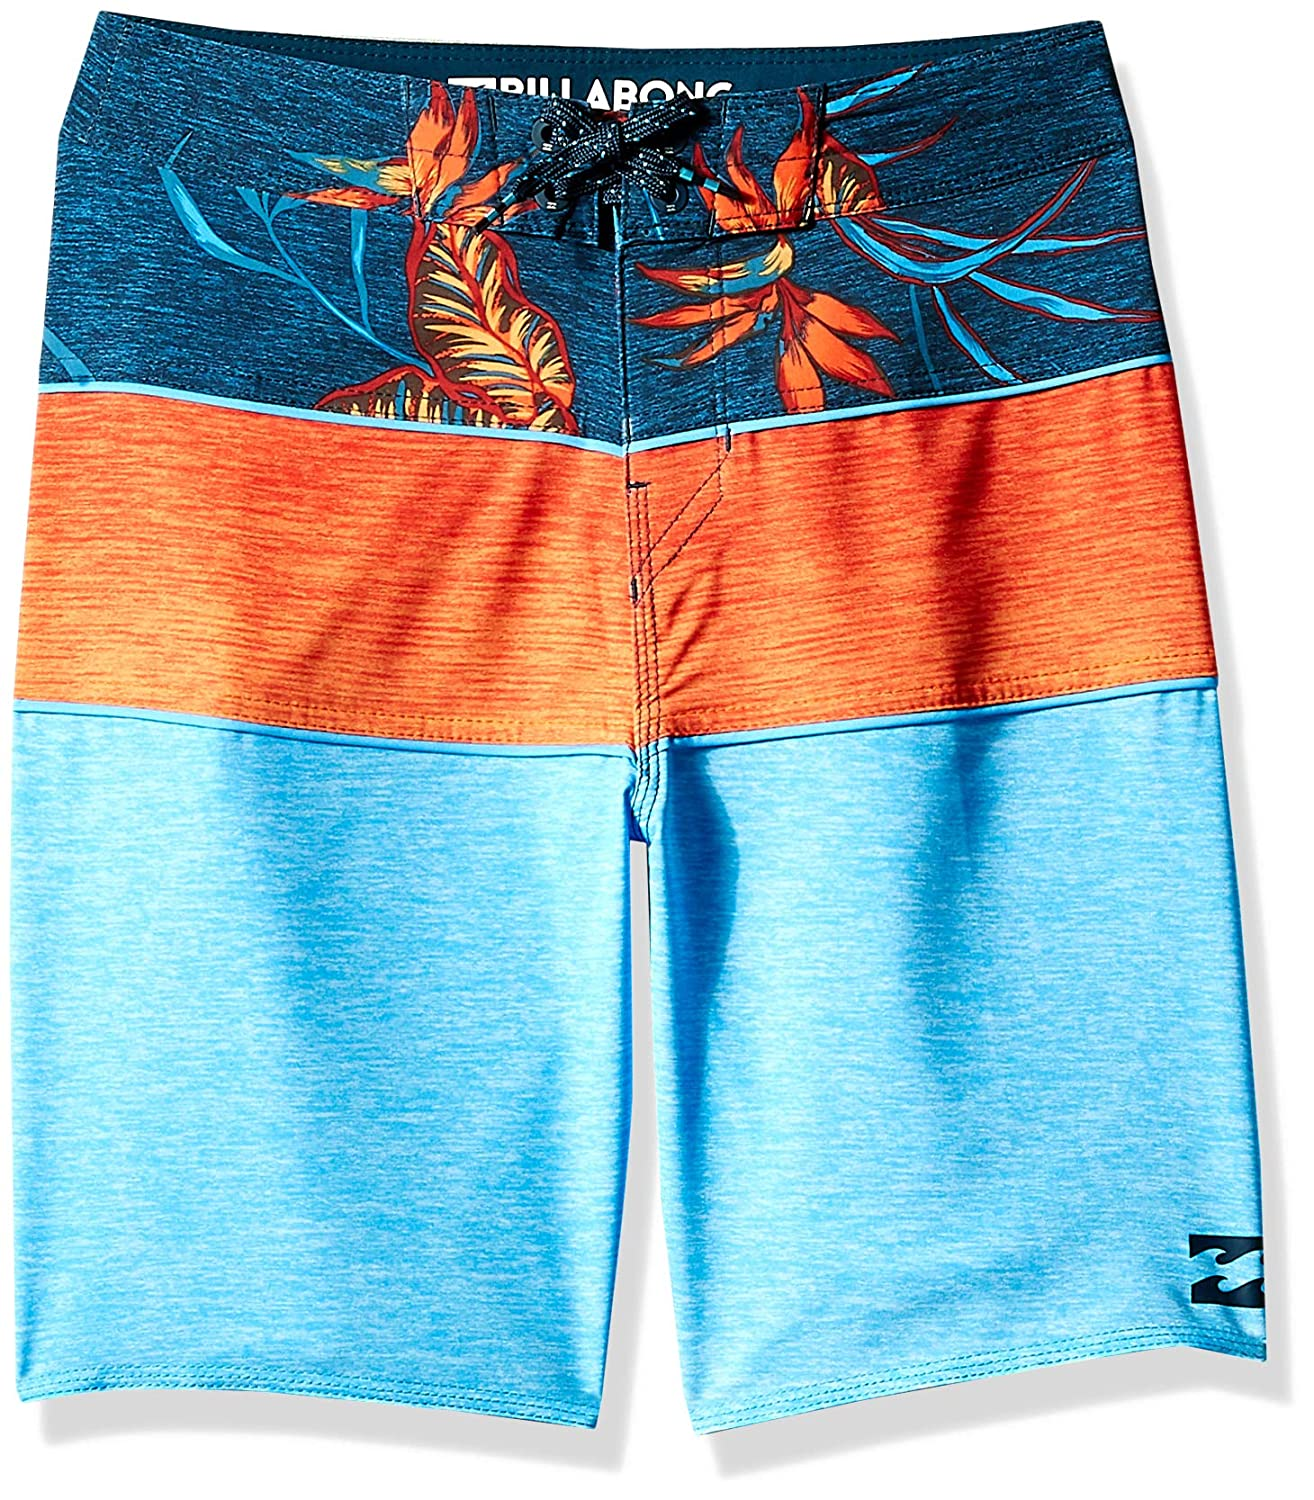 Billabong Boys ' Tribong X Boardshort US サイズ: 28 カラー: ブルー